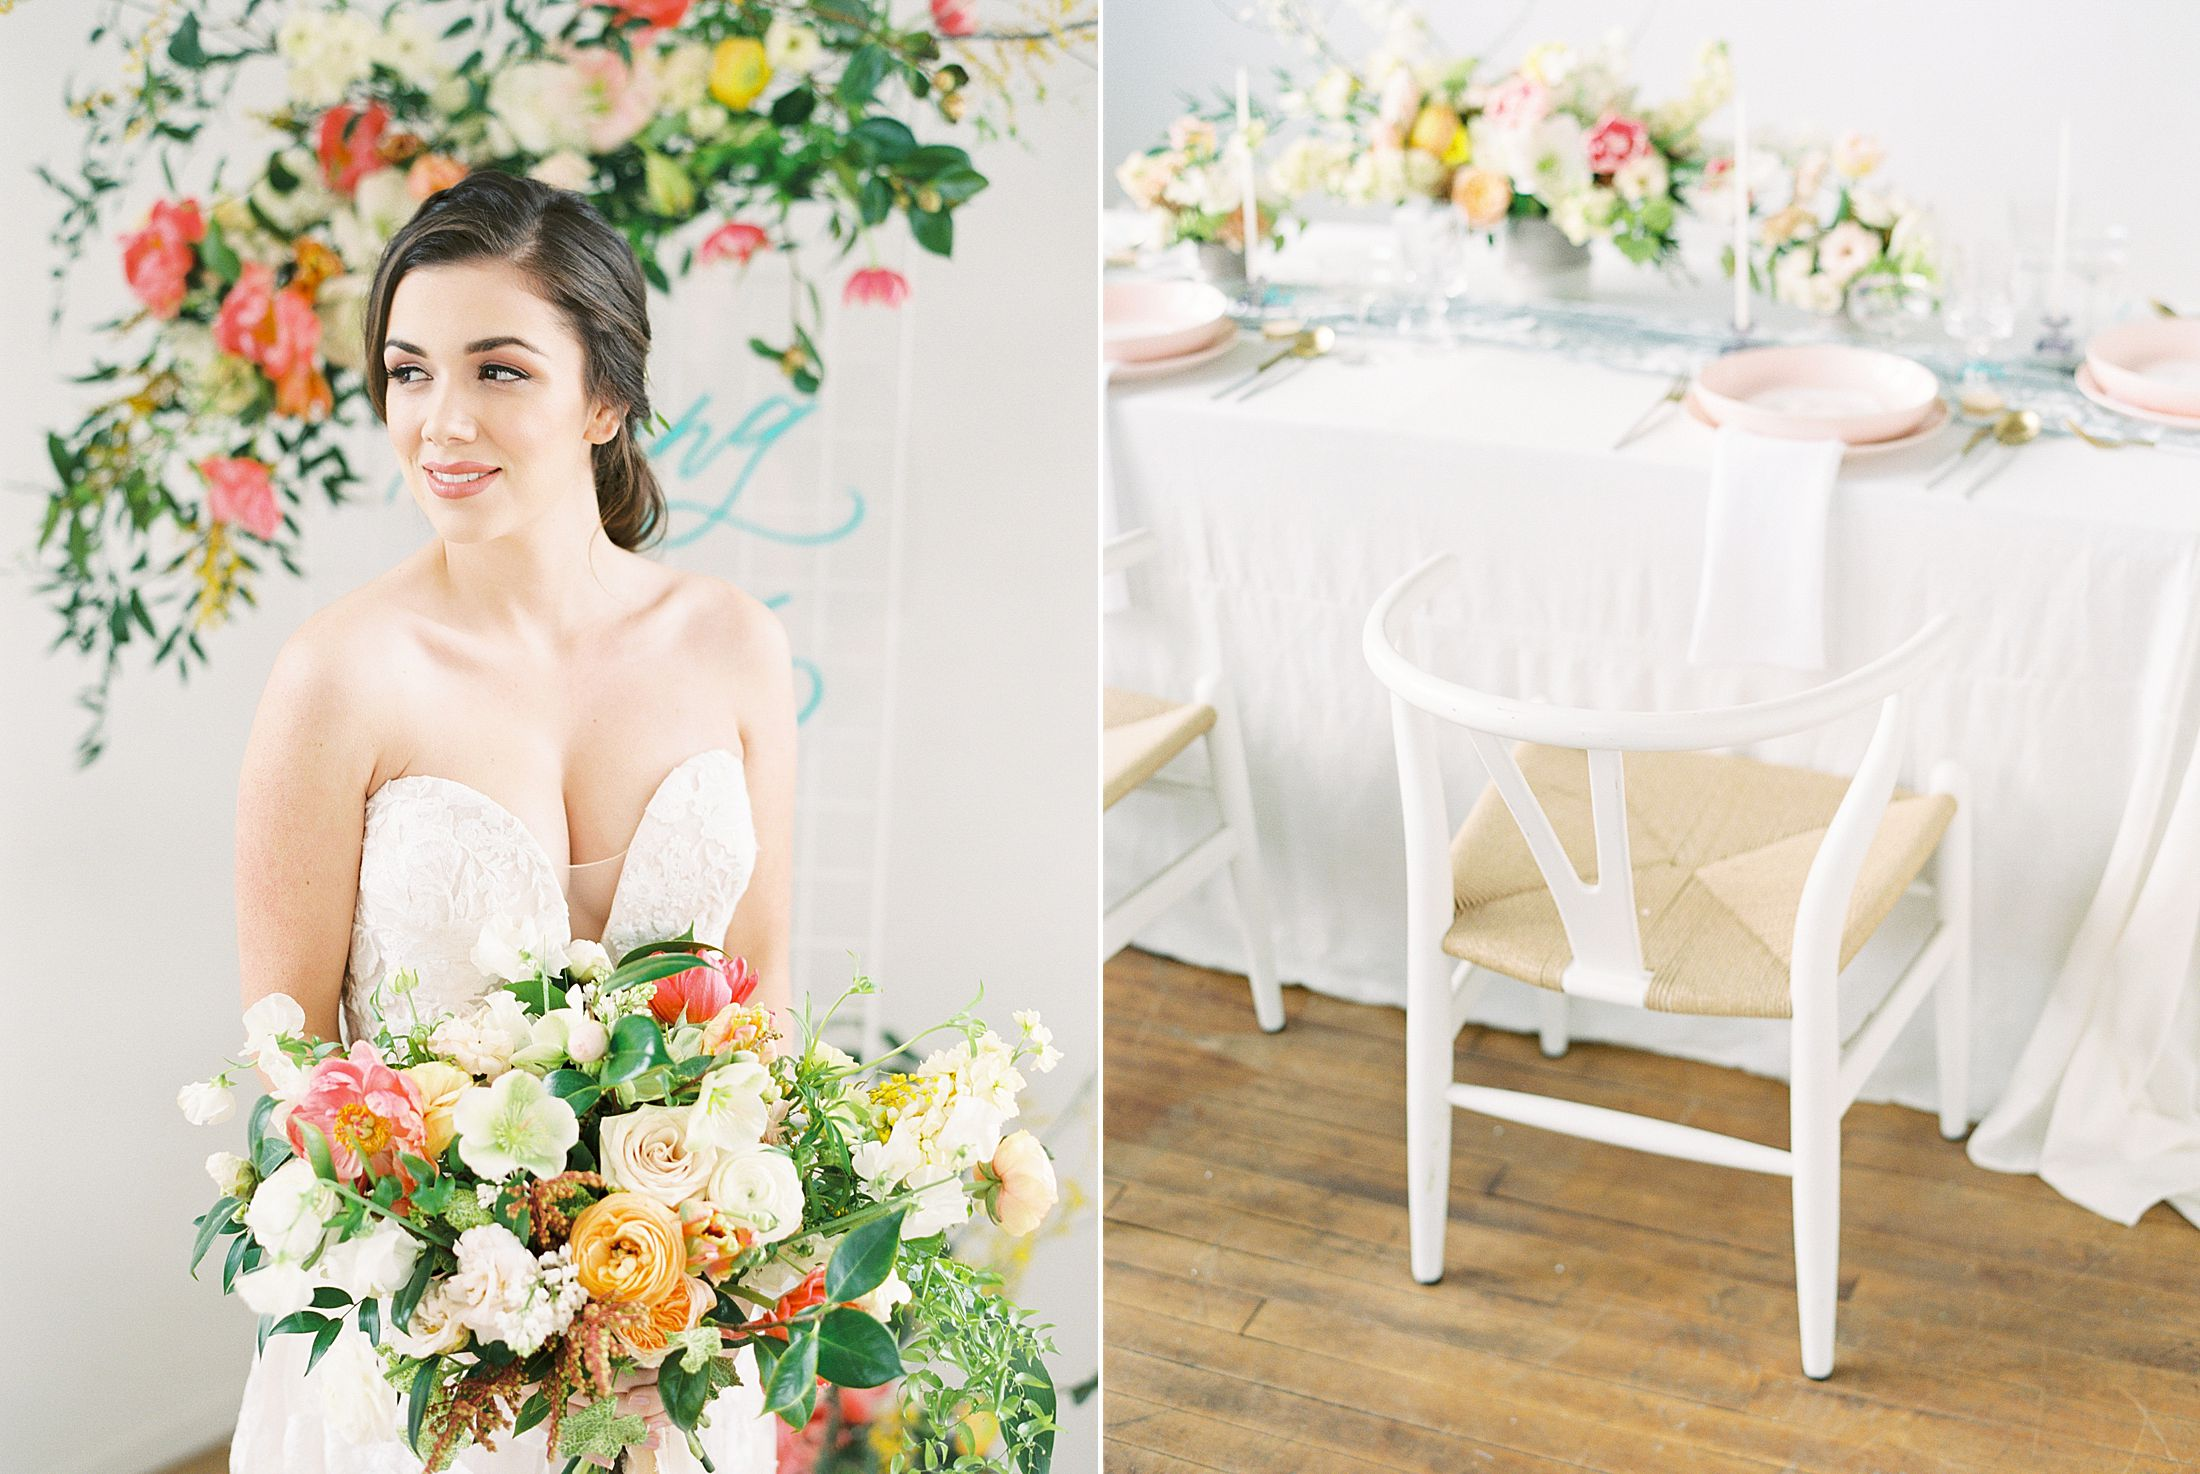 Bay Area Spring Wedding Inspiration - Ashley Baumgartner - Inspired By This - Party Crush Studio and Lens of Lenox Videography - Bay Area Wedding Photography_0047.jpg